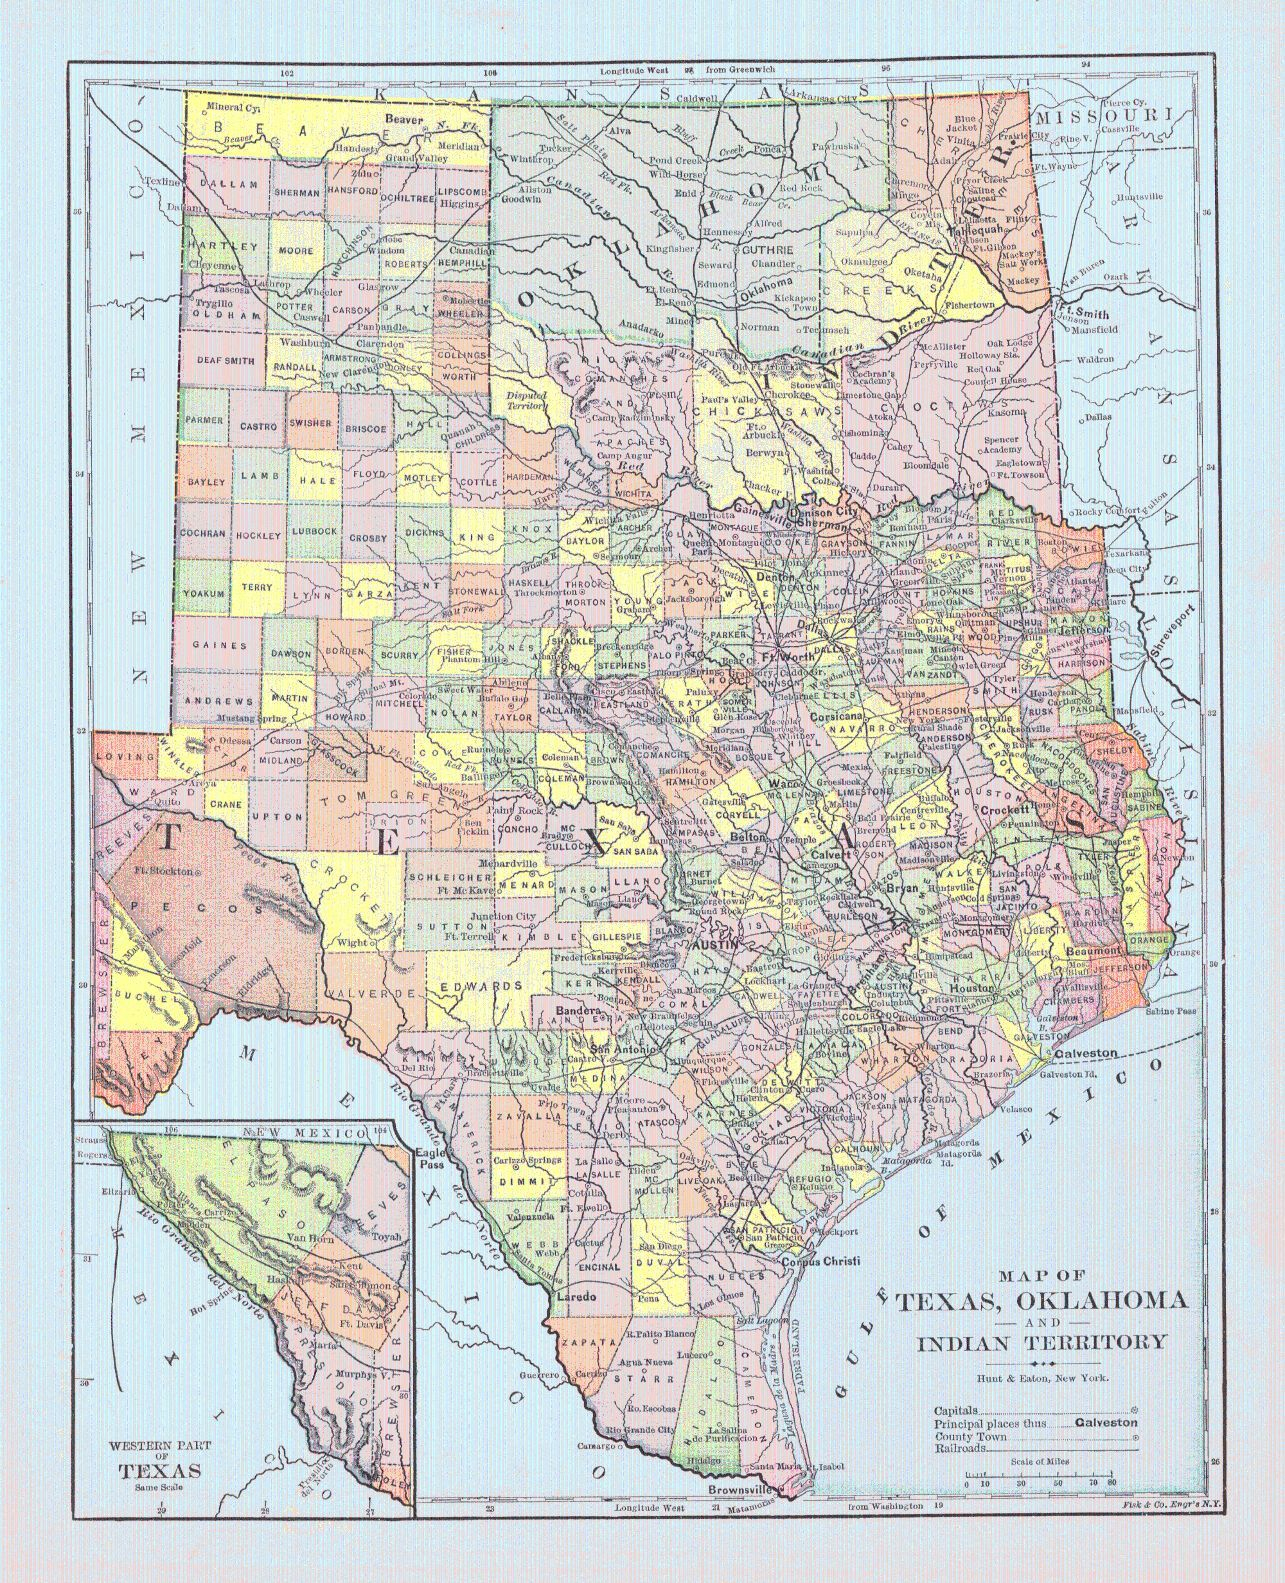 Map Of Texas, Oklahoma And Indian Territory. Hunt & Eaton, Fisk & Co - Map Of Oklahoma And Texas Together